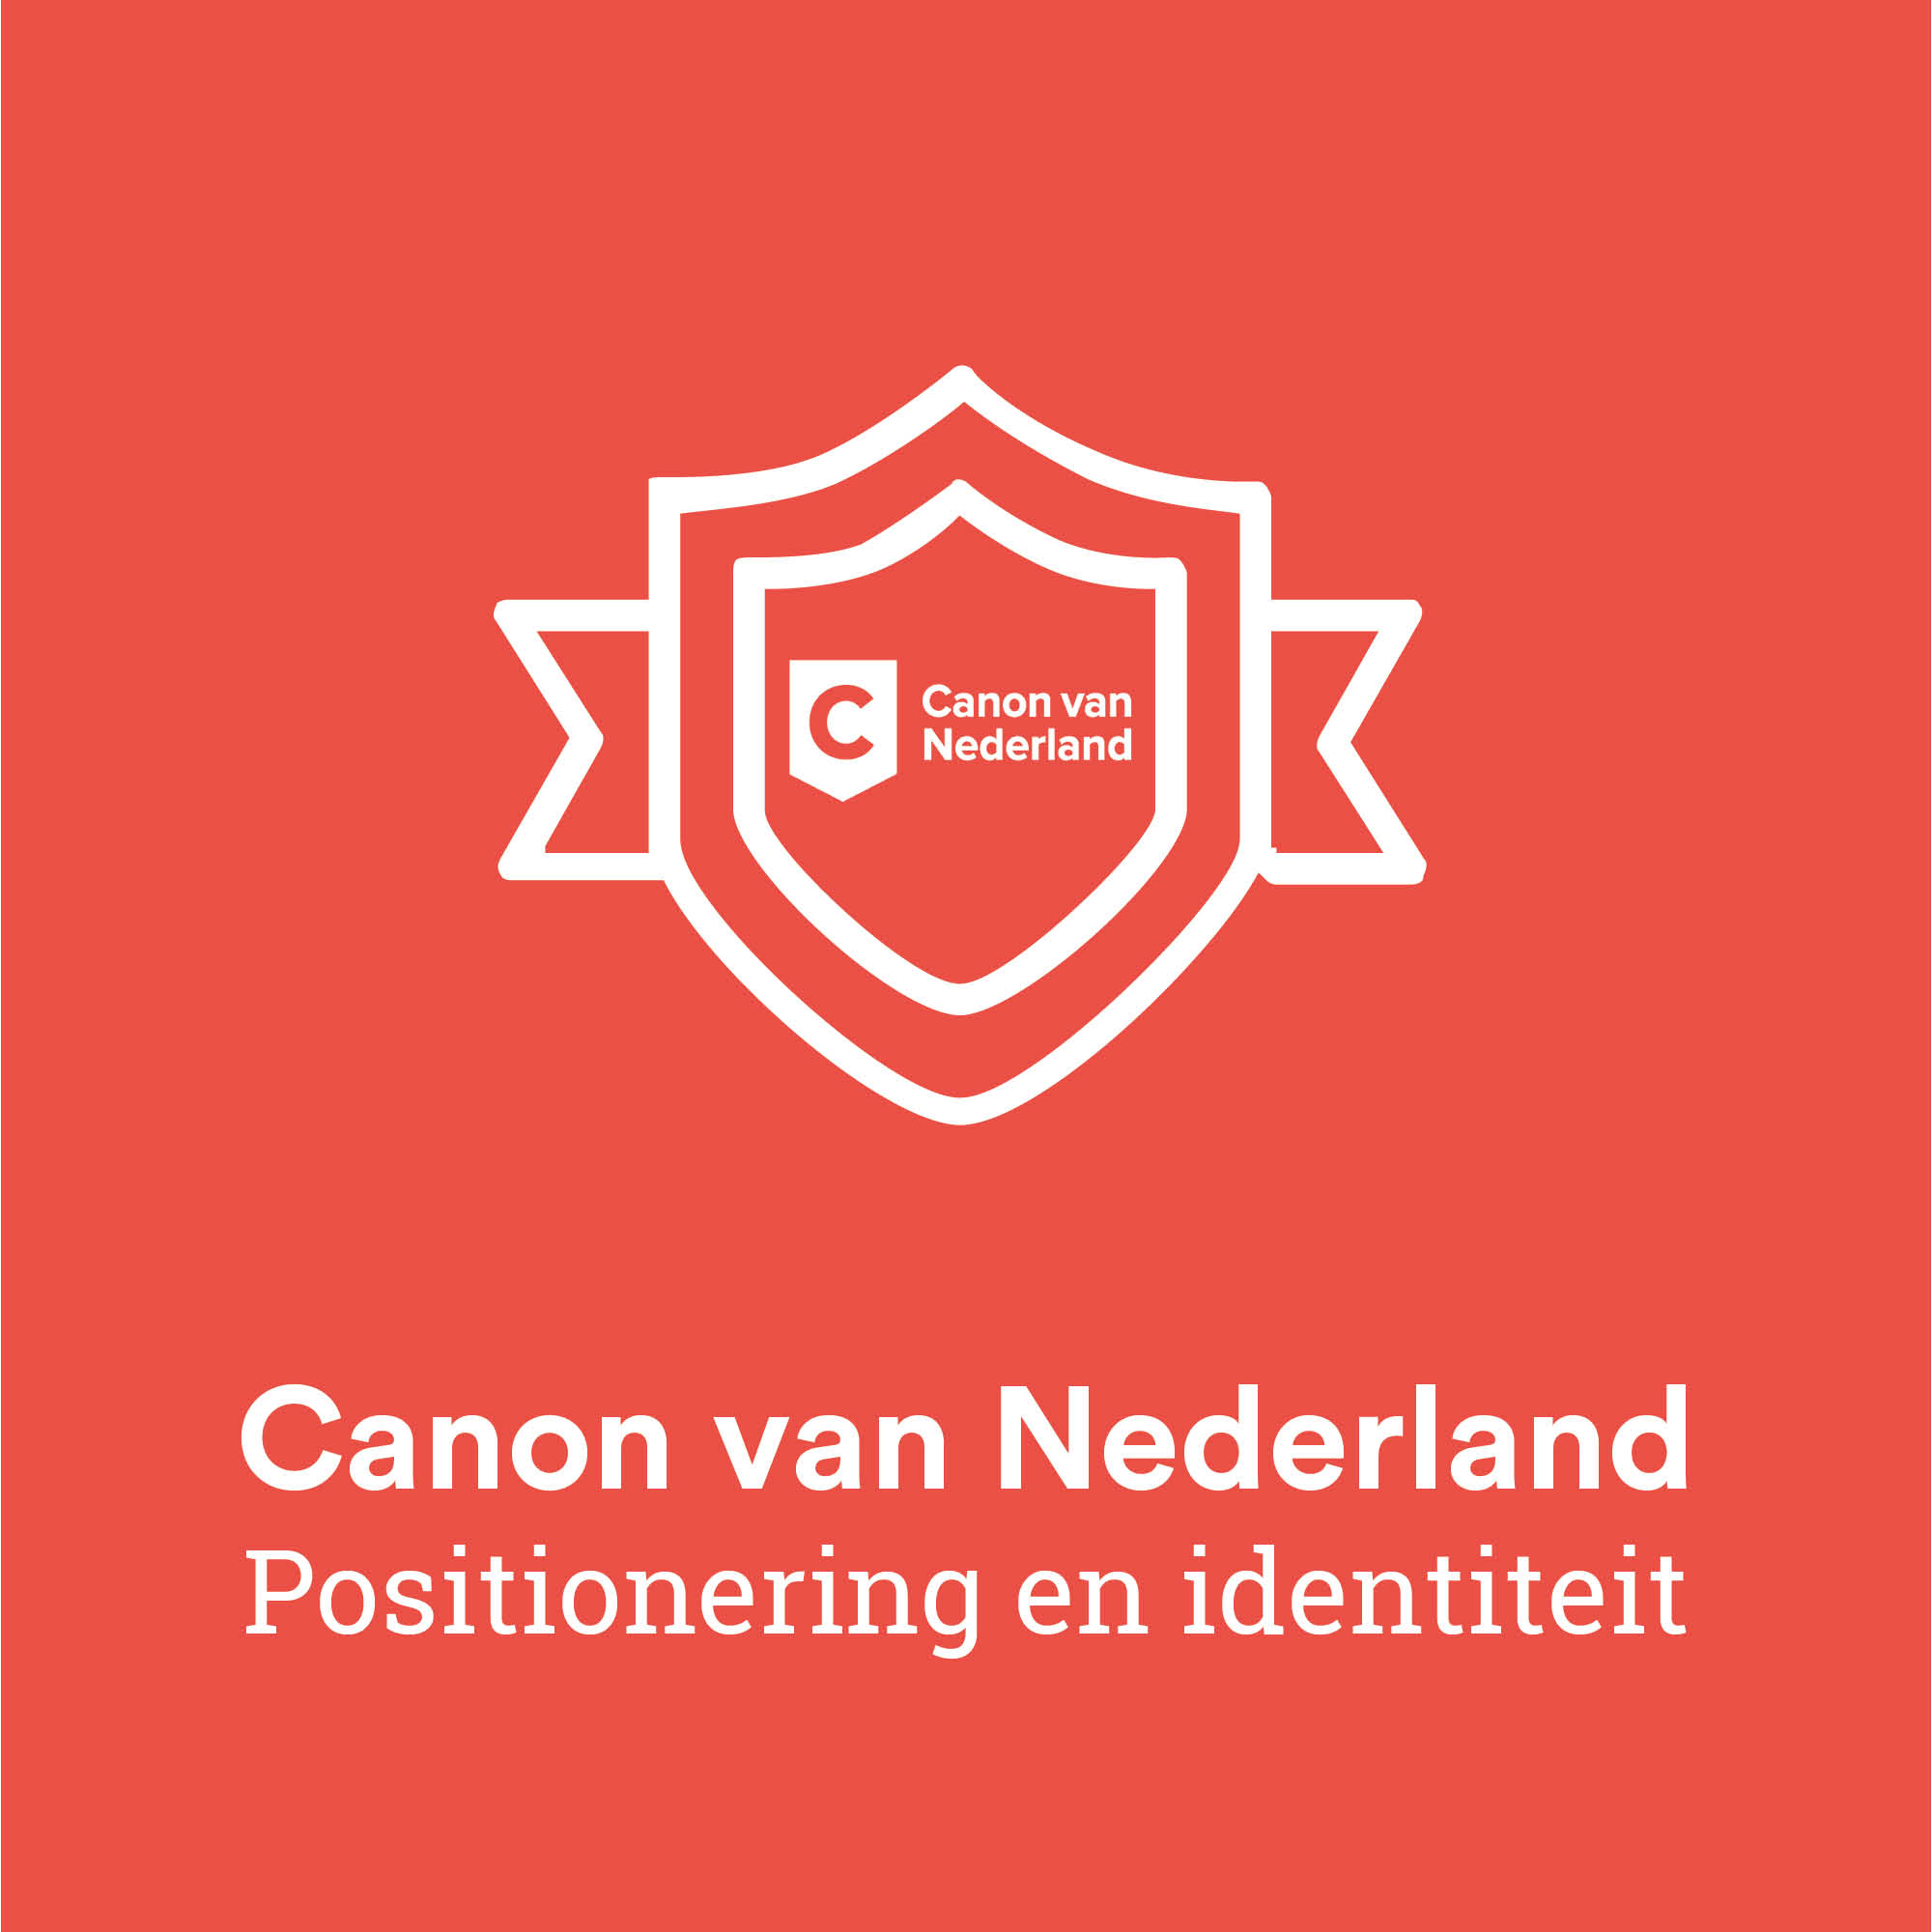 Canon of the Netherlands